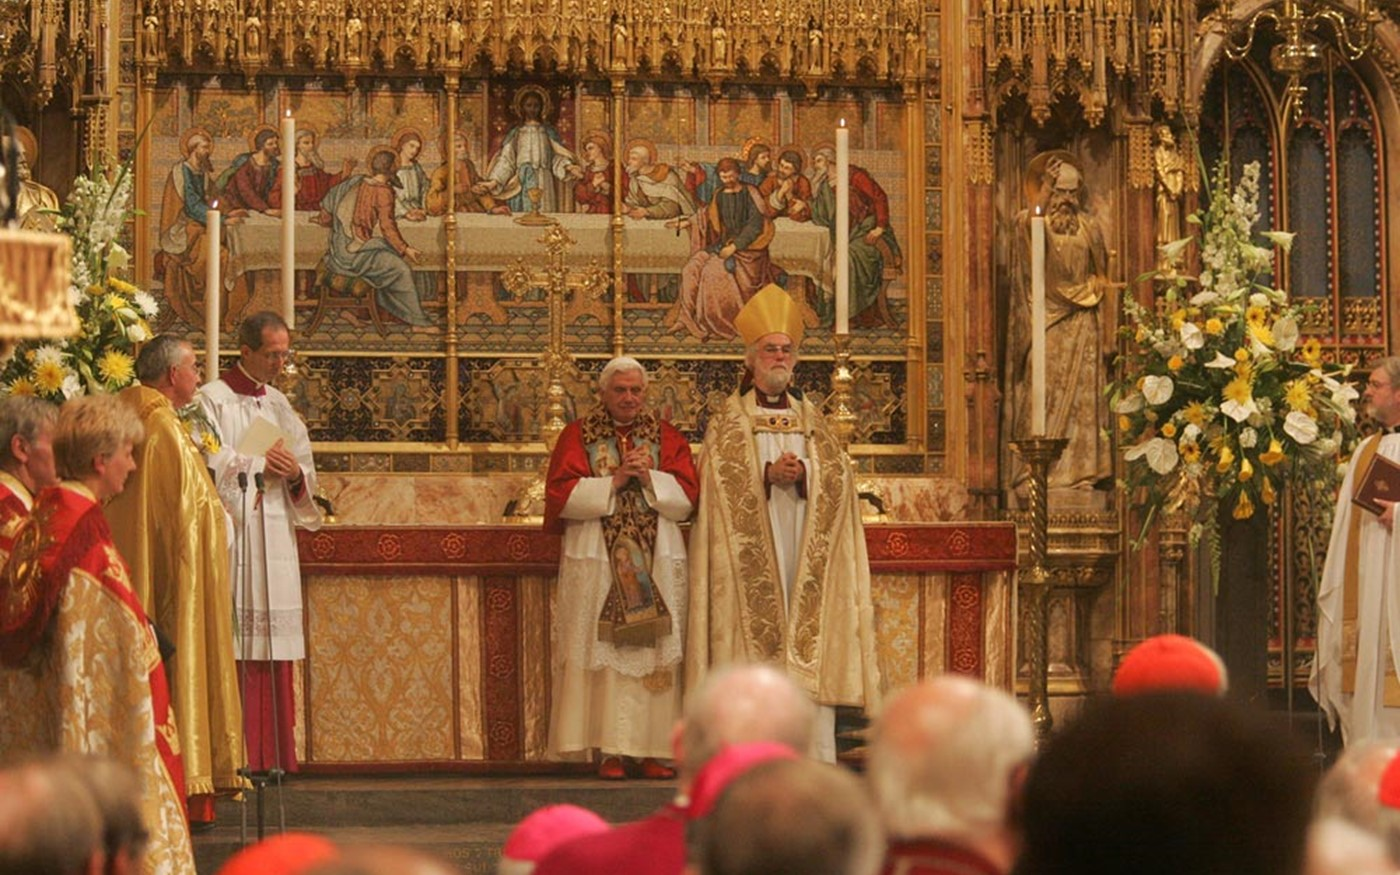 The Archbishop of Canterbury and the Pope pronounce the Blessing together